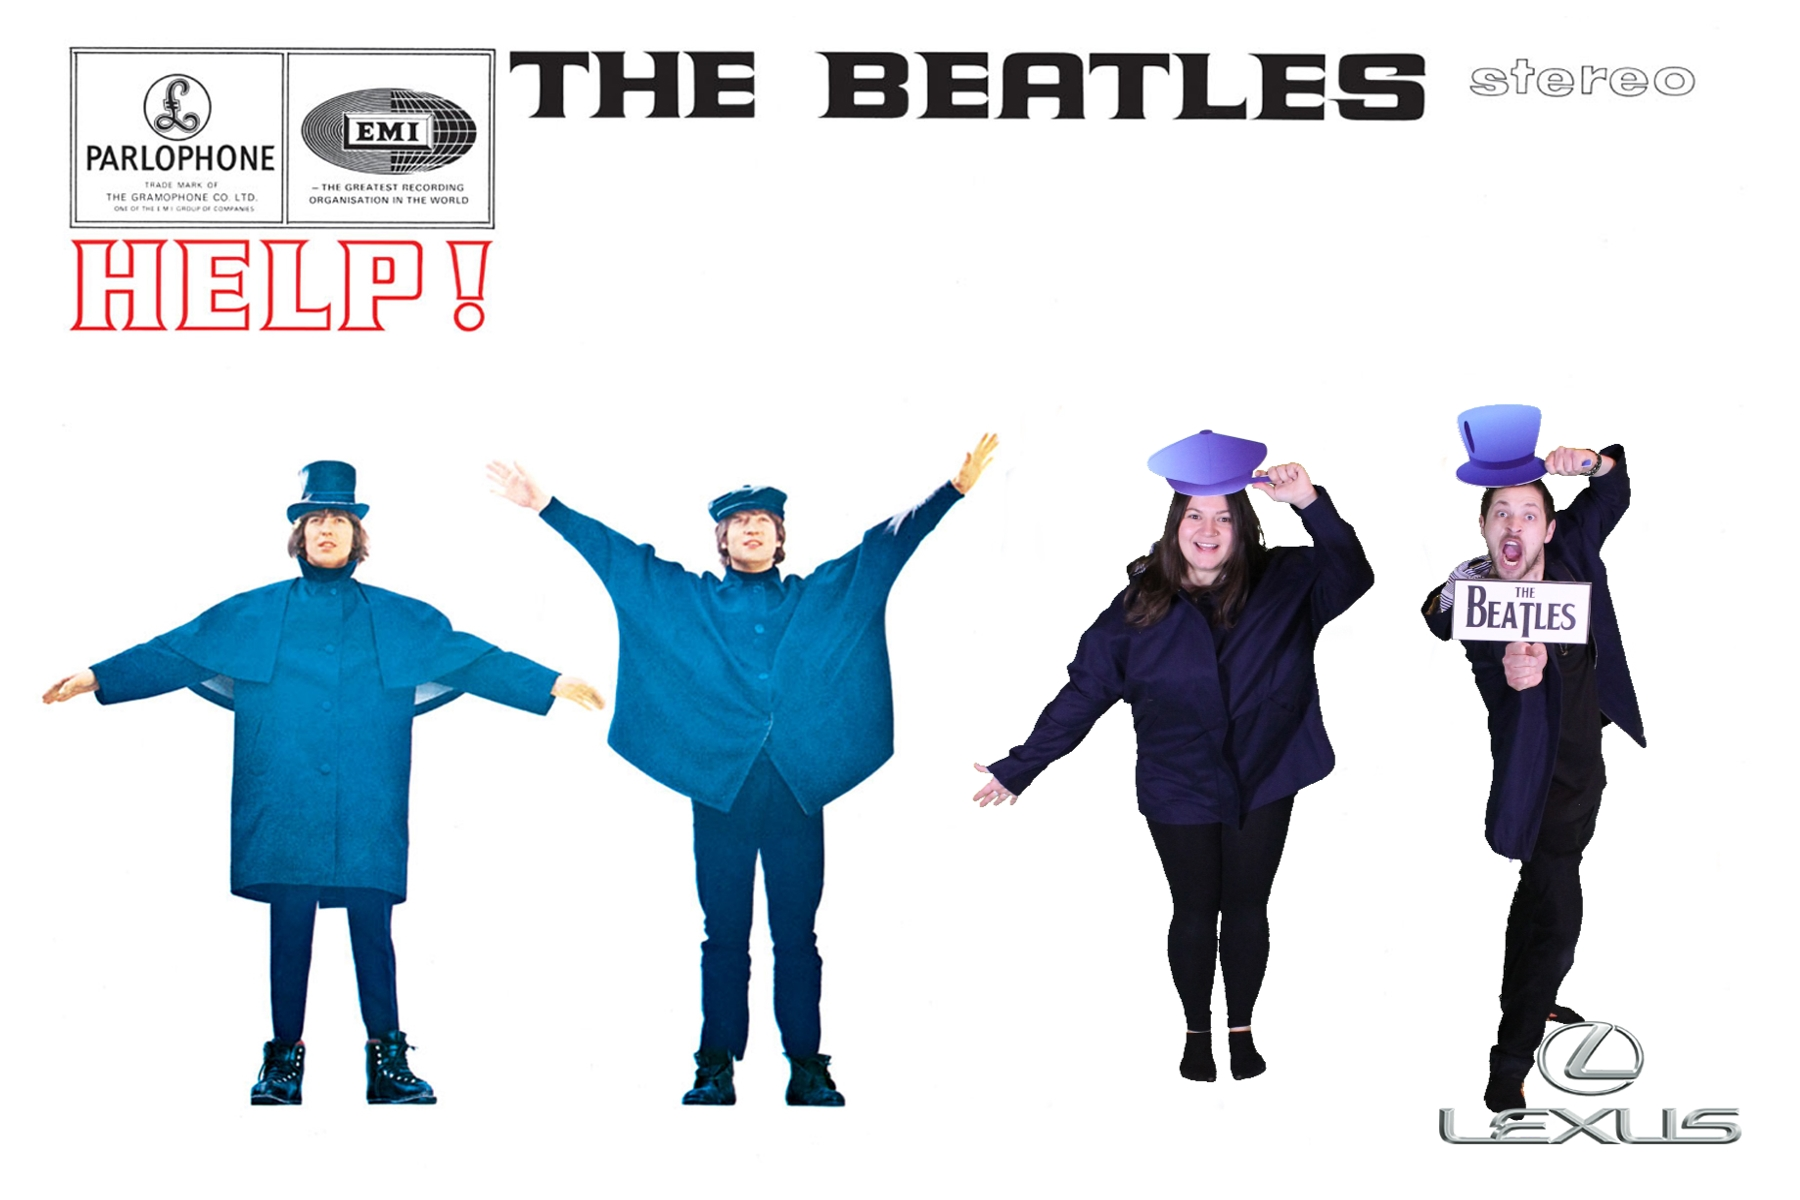 Lexus beatles sample photo infinity booth